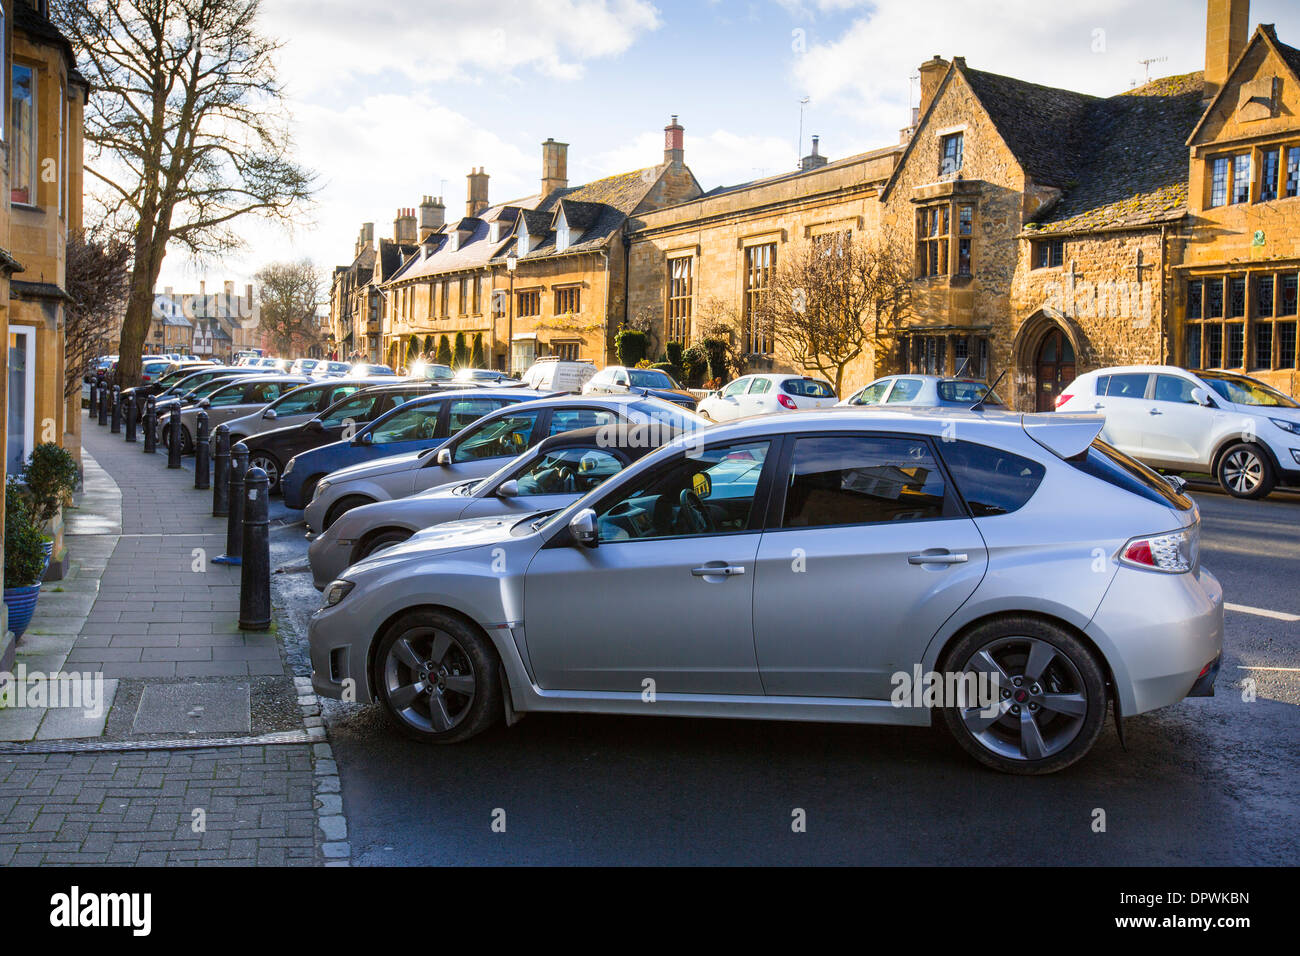 Vehicles parked in the High Street in Chipping Campden, Gloucestershire. - Stock Image